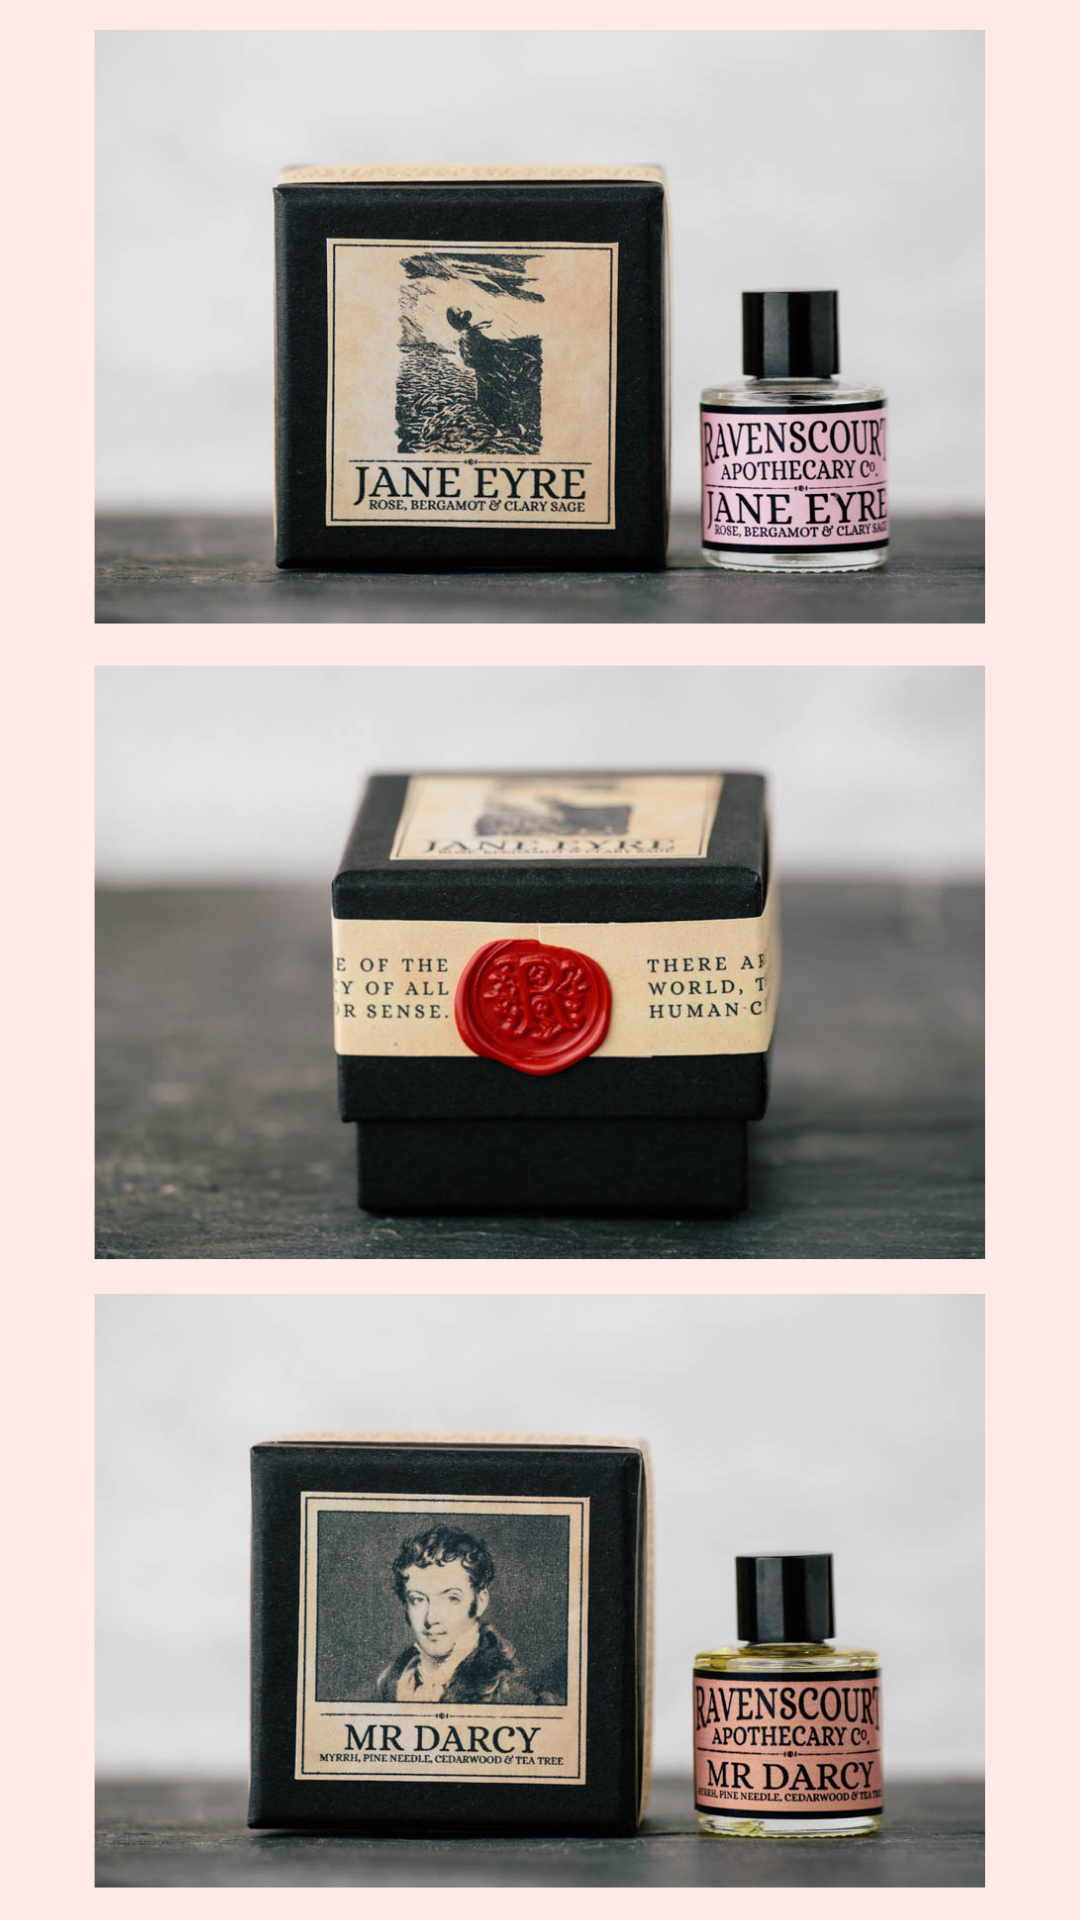 Ravenscourt Apothecary vegan perfume, Jane Eyre and Mr Darcy scents